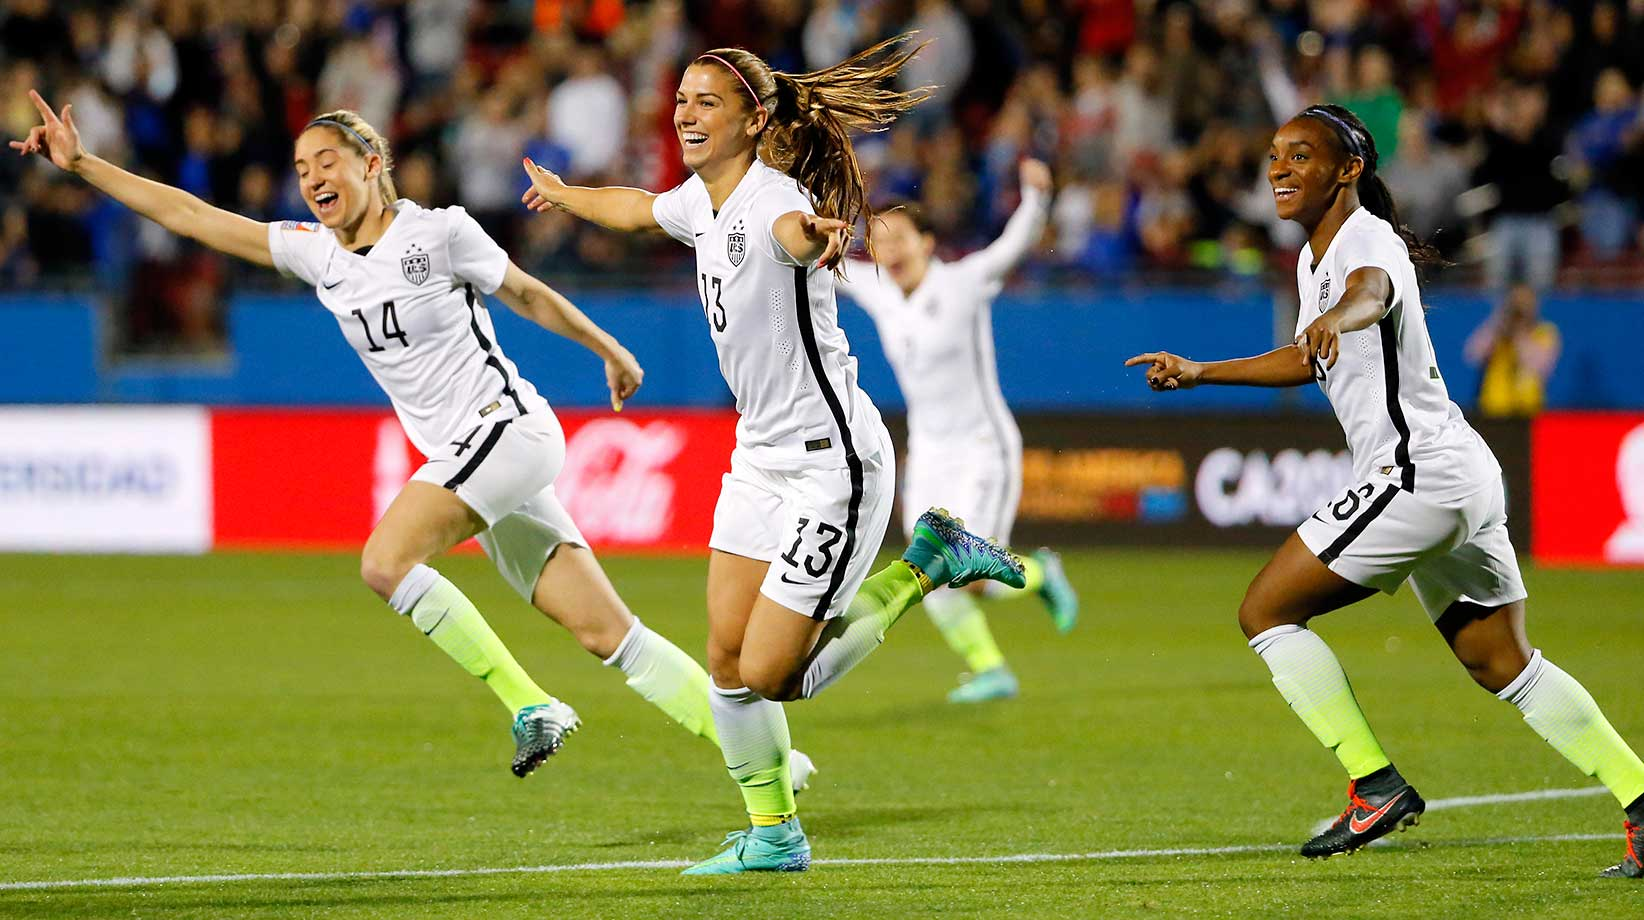 Alex Morgan (13), Morgan Brian (14) and Crystal Dunn, right, celebrate a goal by Morgan against Costa Rica.